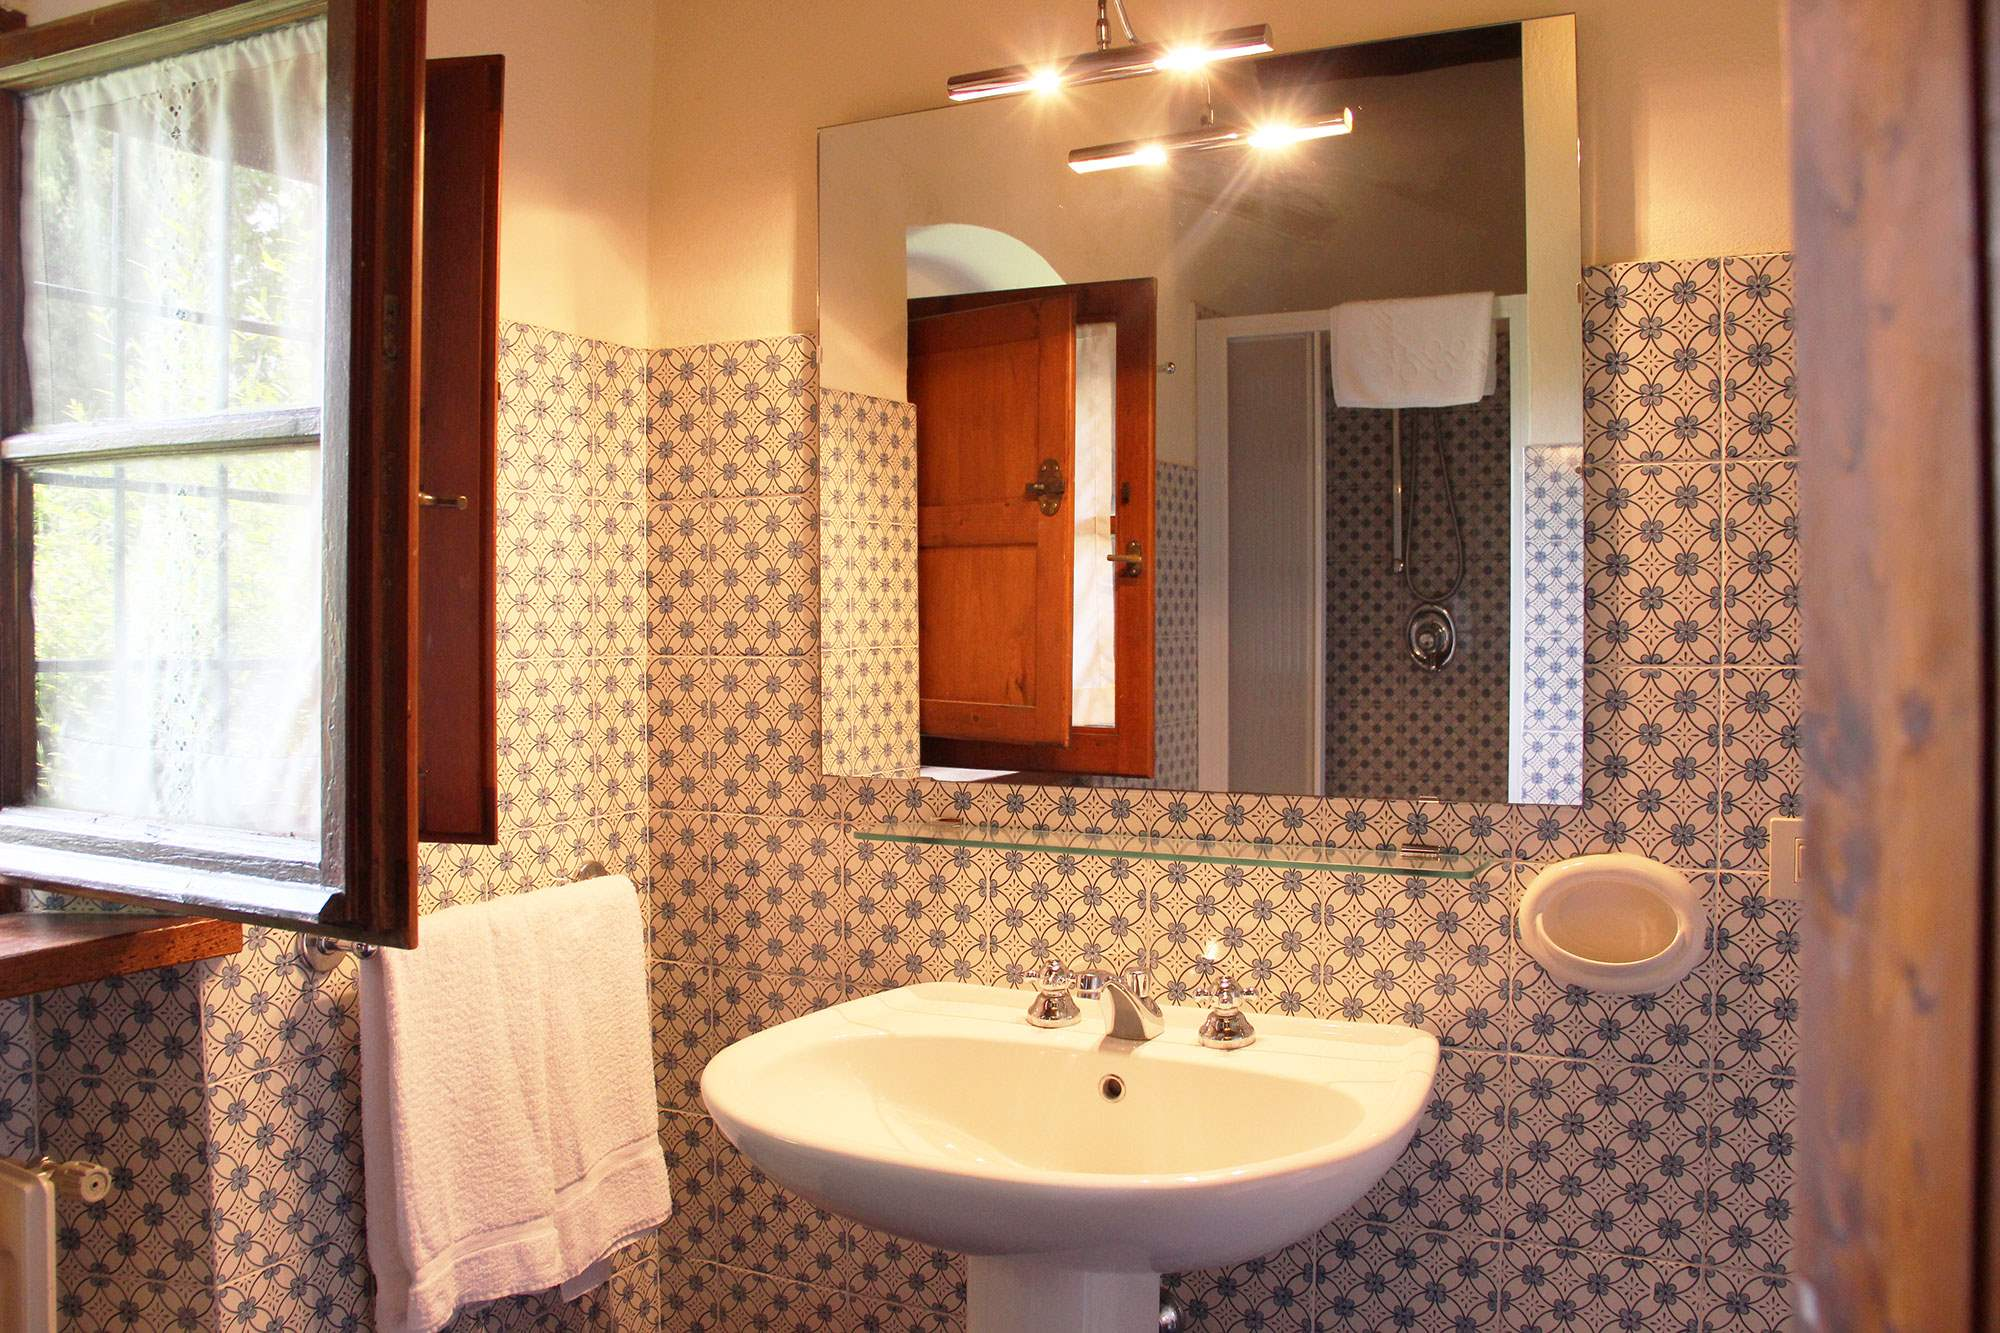 Casas Ferruzzi, 8 bedroom apartment in Chianti & Countryside, Tuscany Photo #17